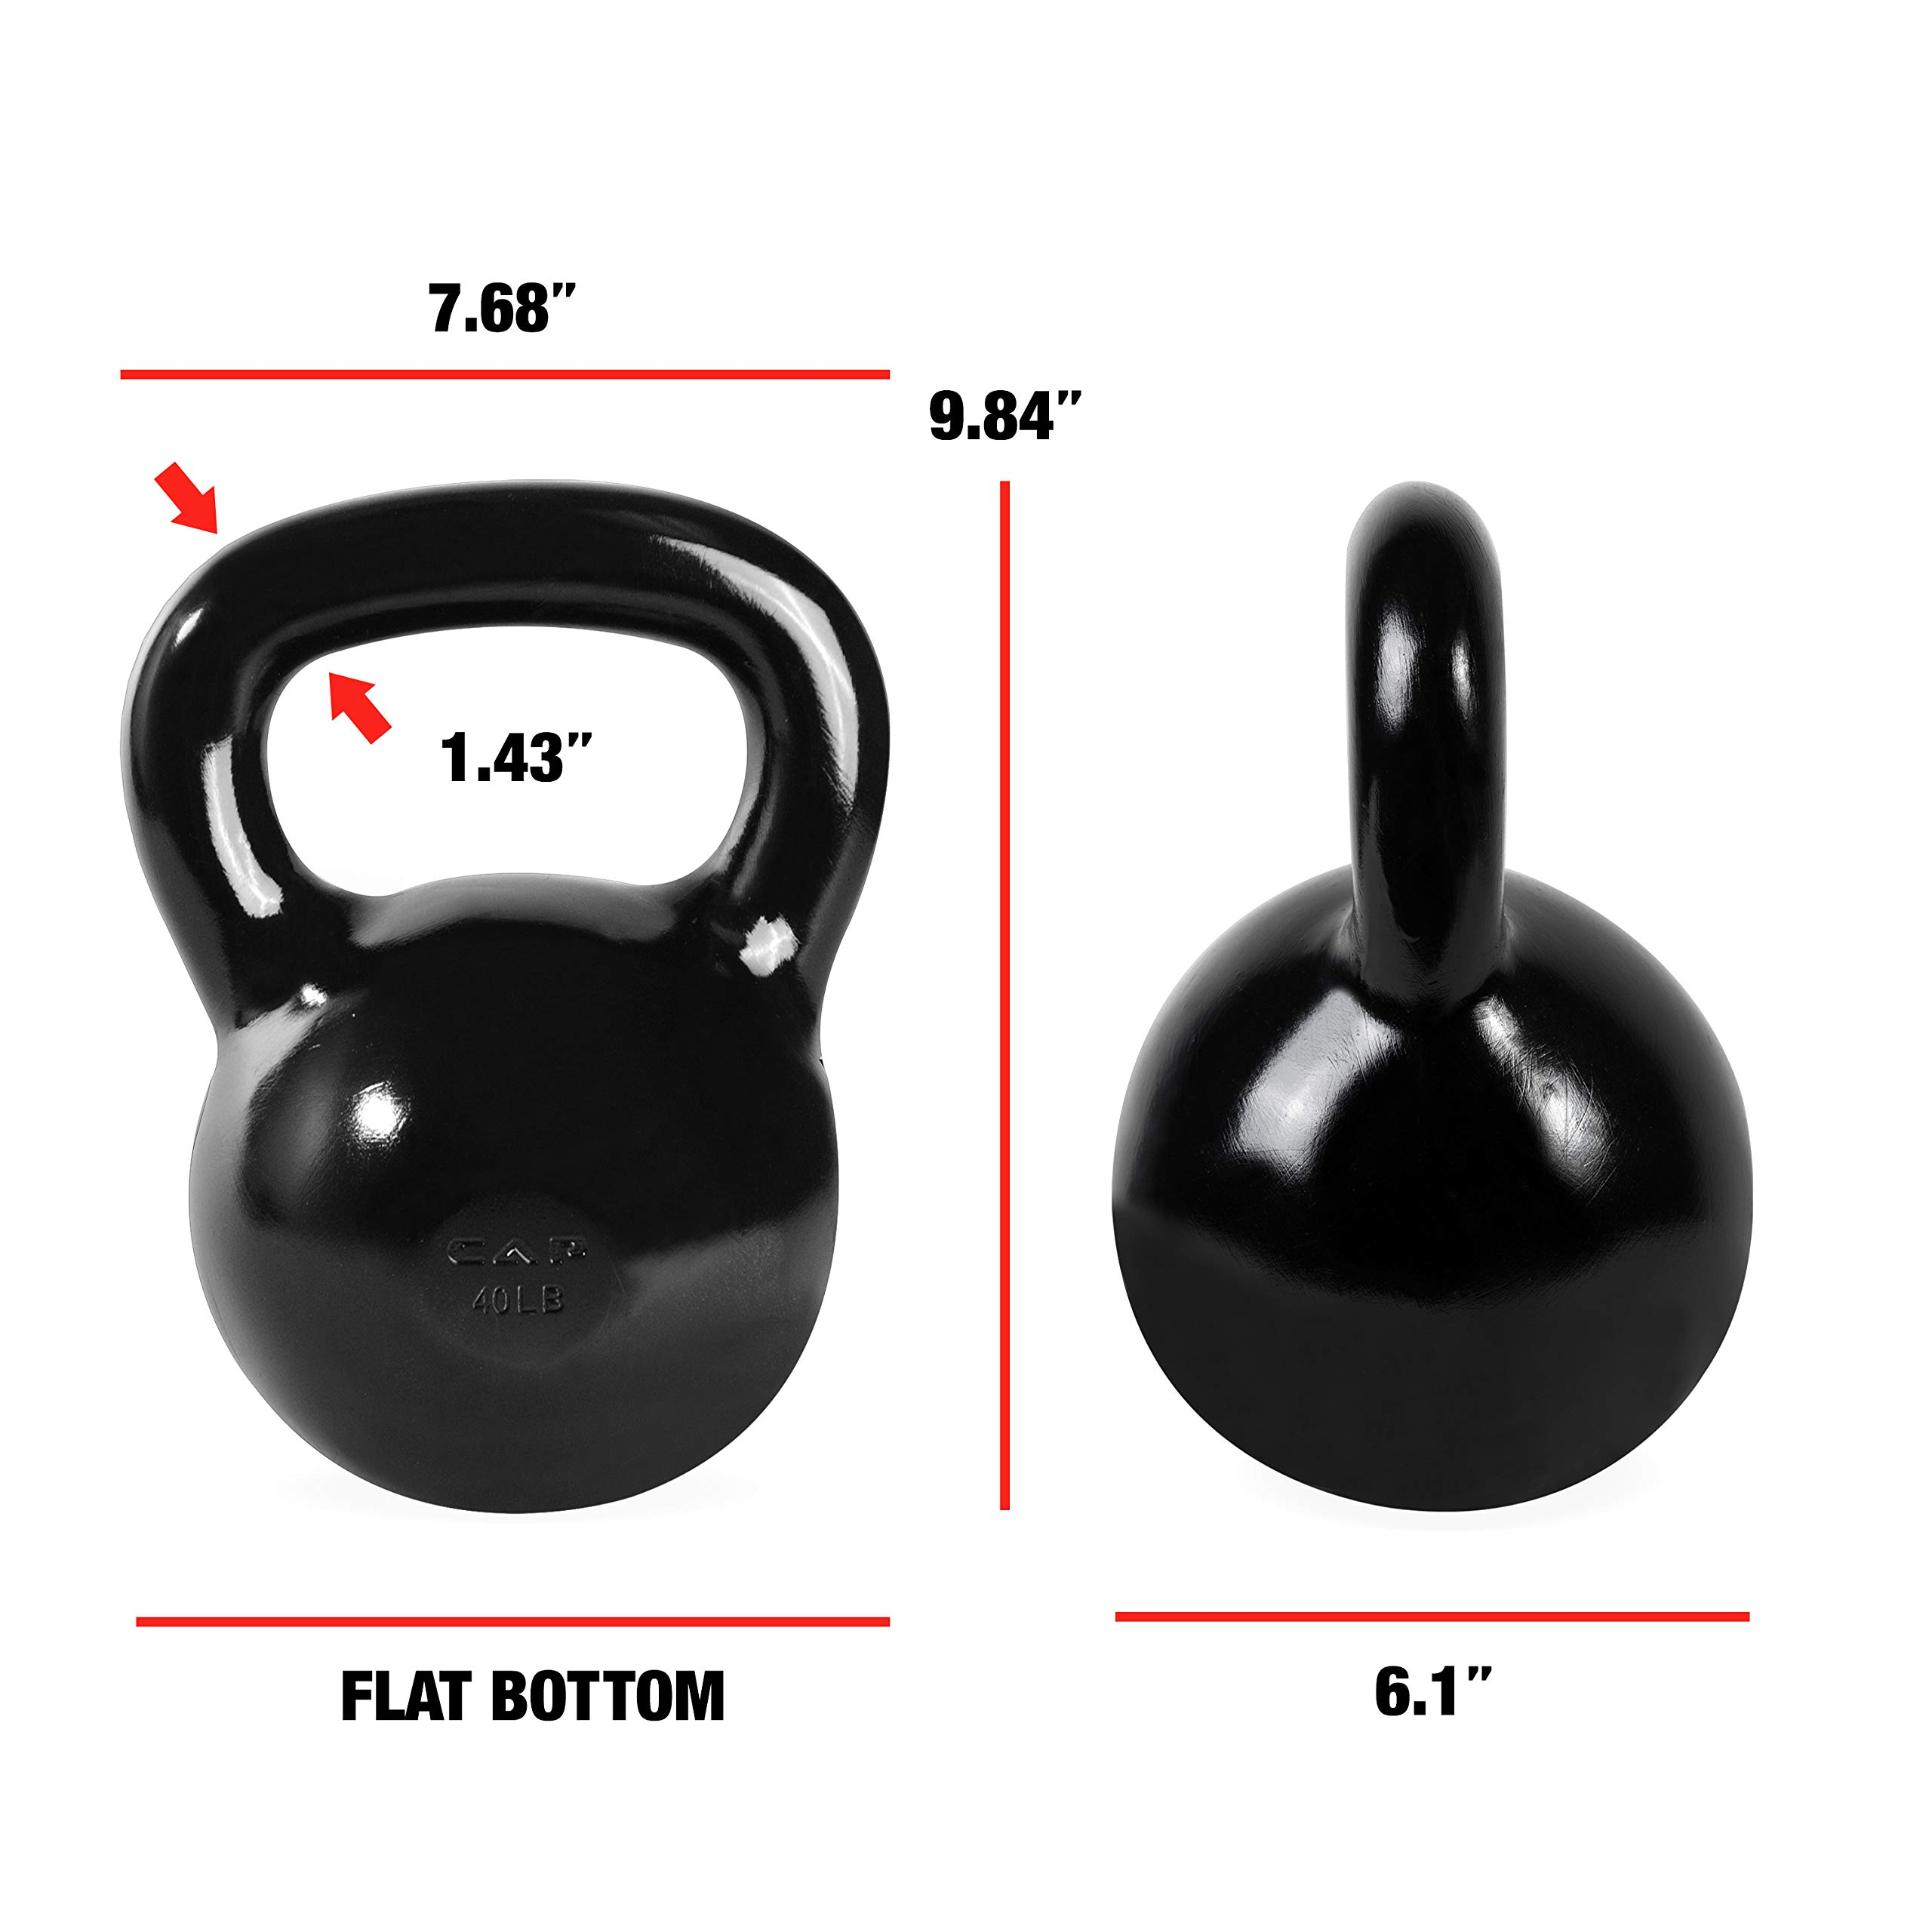 CAP Barbell SDK2-040 Enamel Coated Cast Iron Kettlebell, 40 lb, Black by CAP Barbell (Image #5)